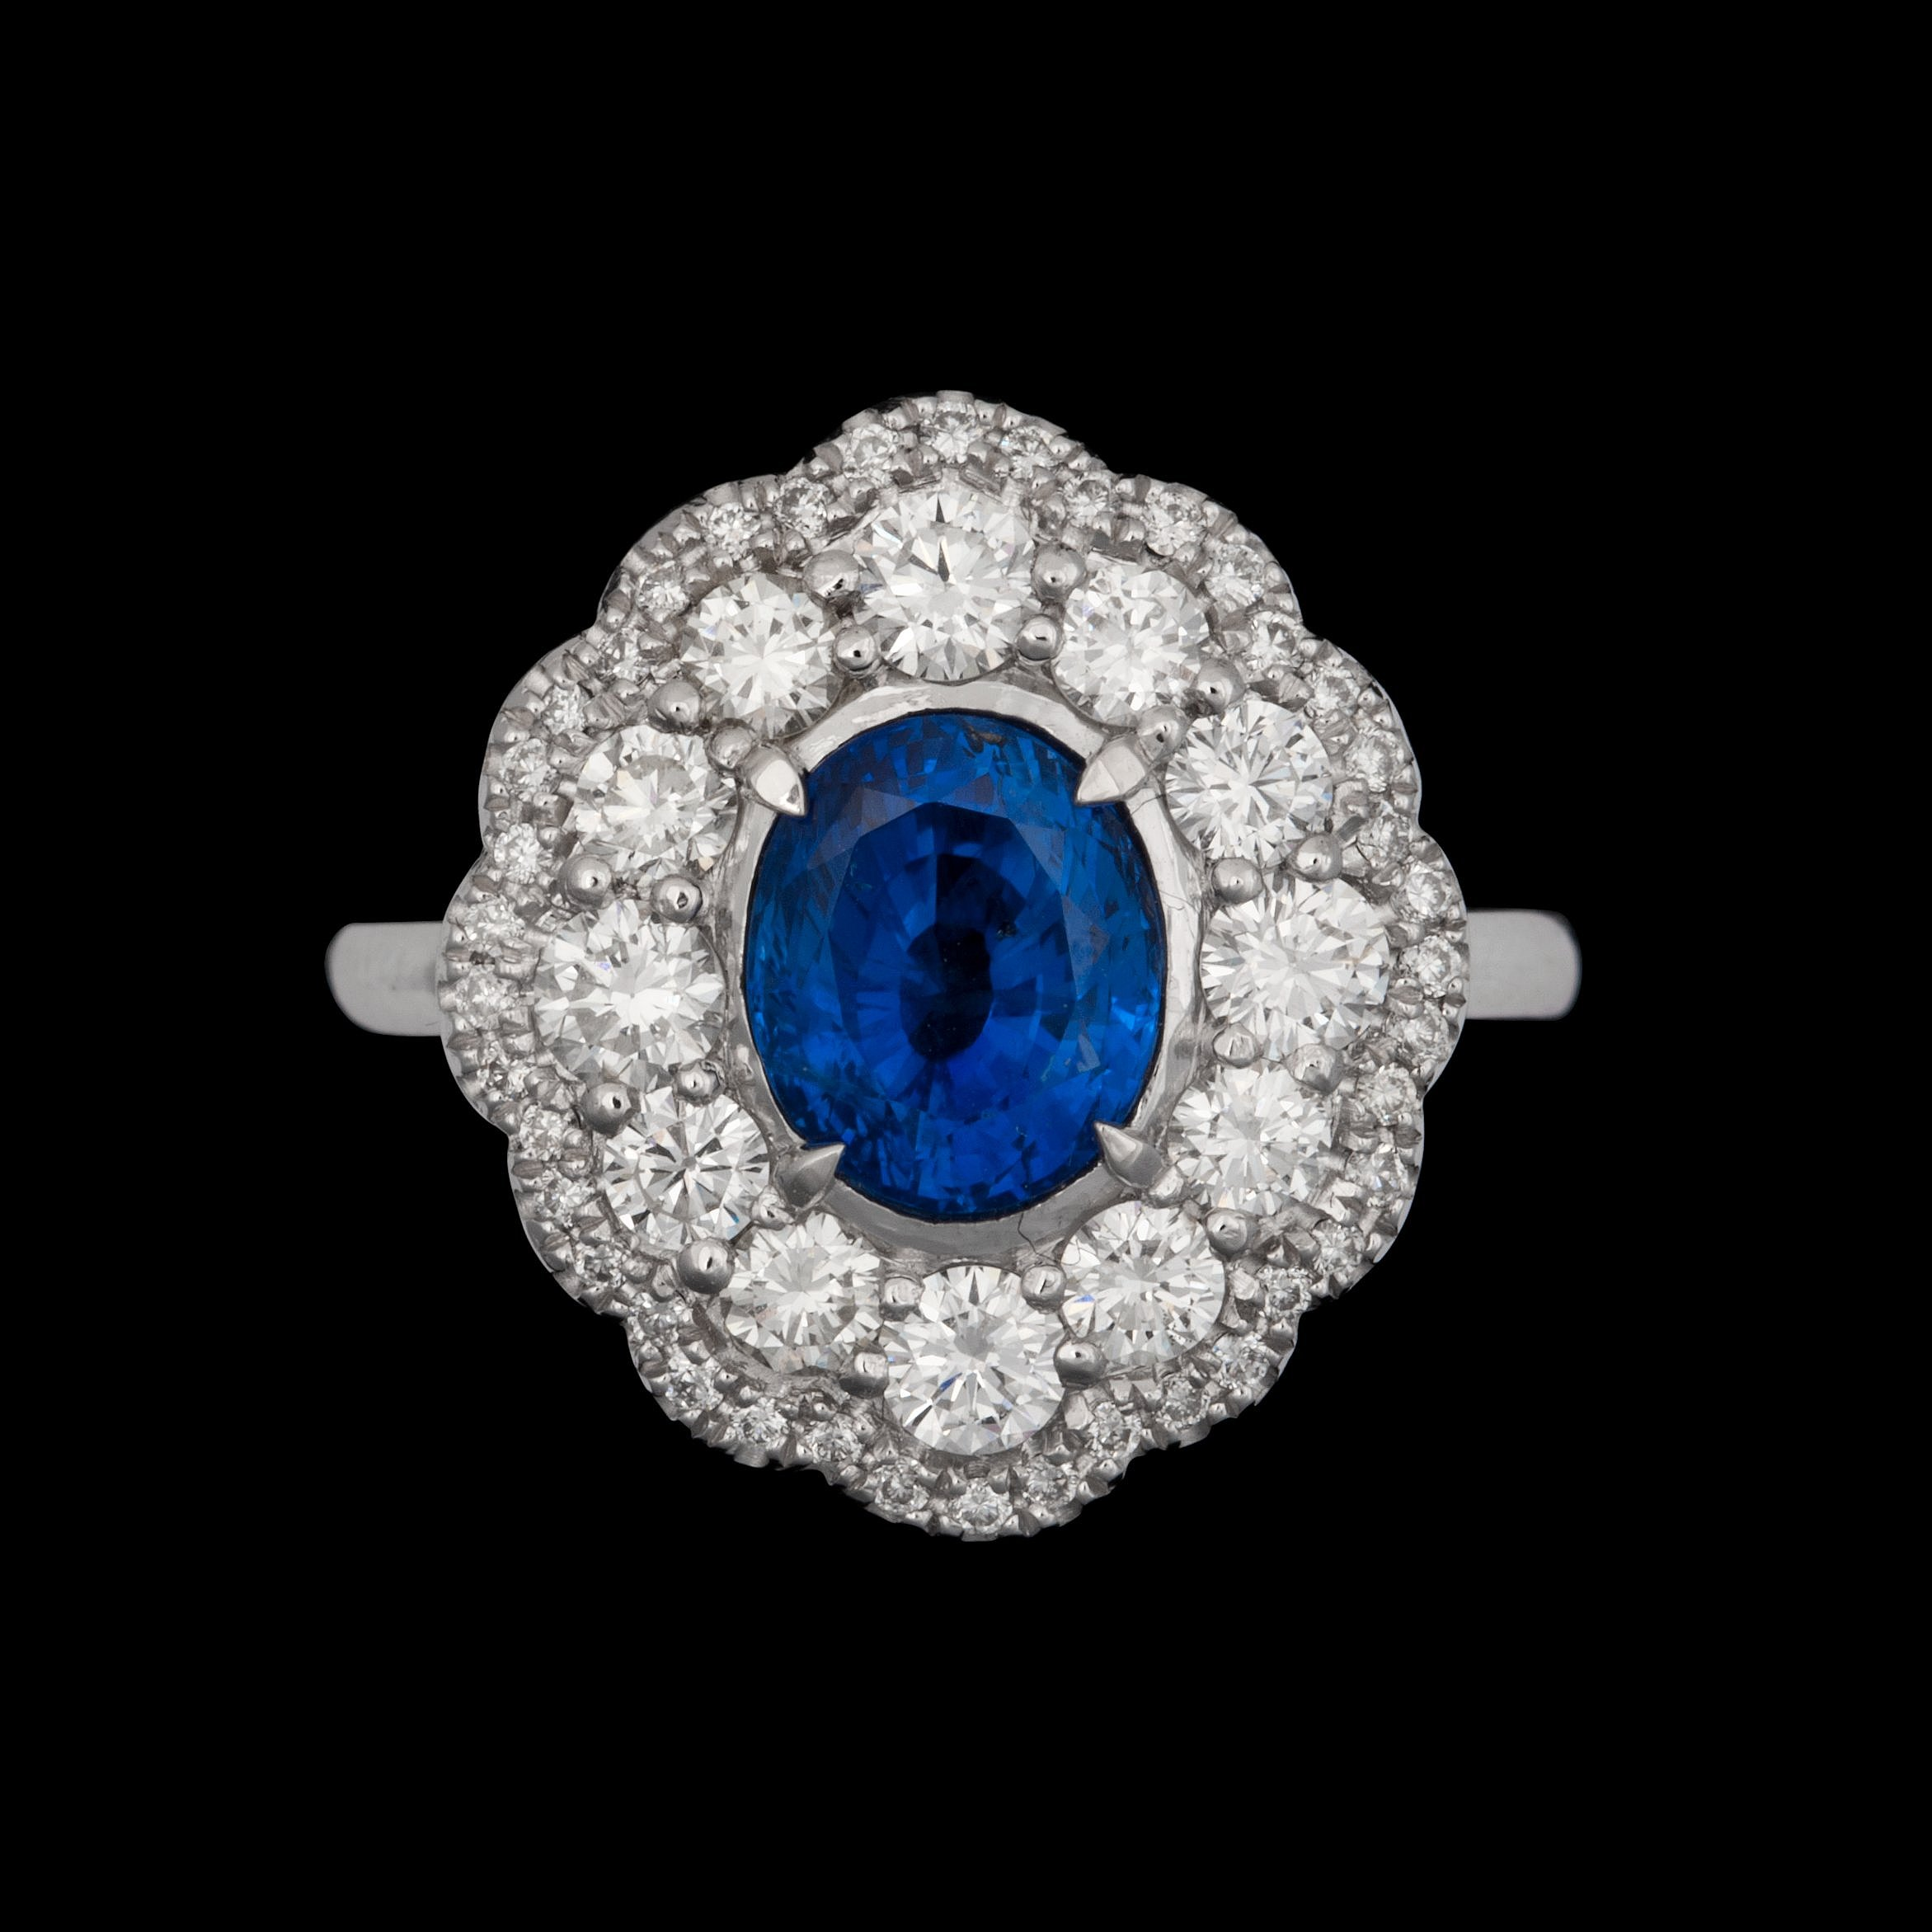 every of medium ring for your jewellery tell story mesmerizing tells engagement anniversary untreated a piece bespoke with today or light us sapphire blue customise